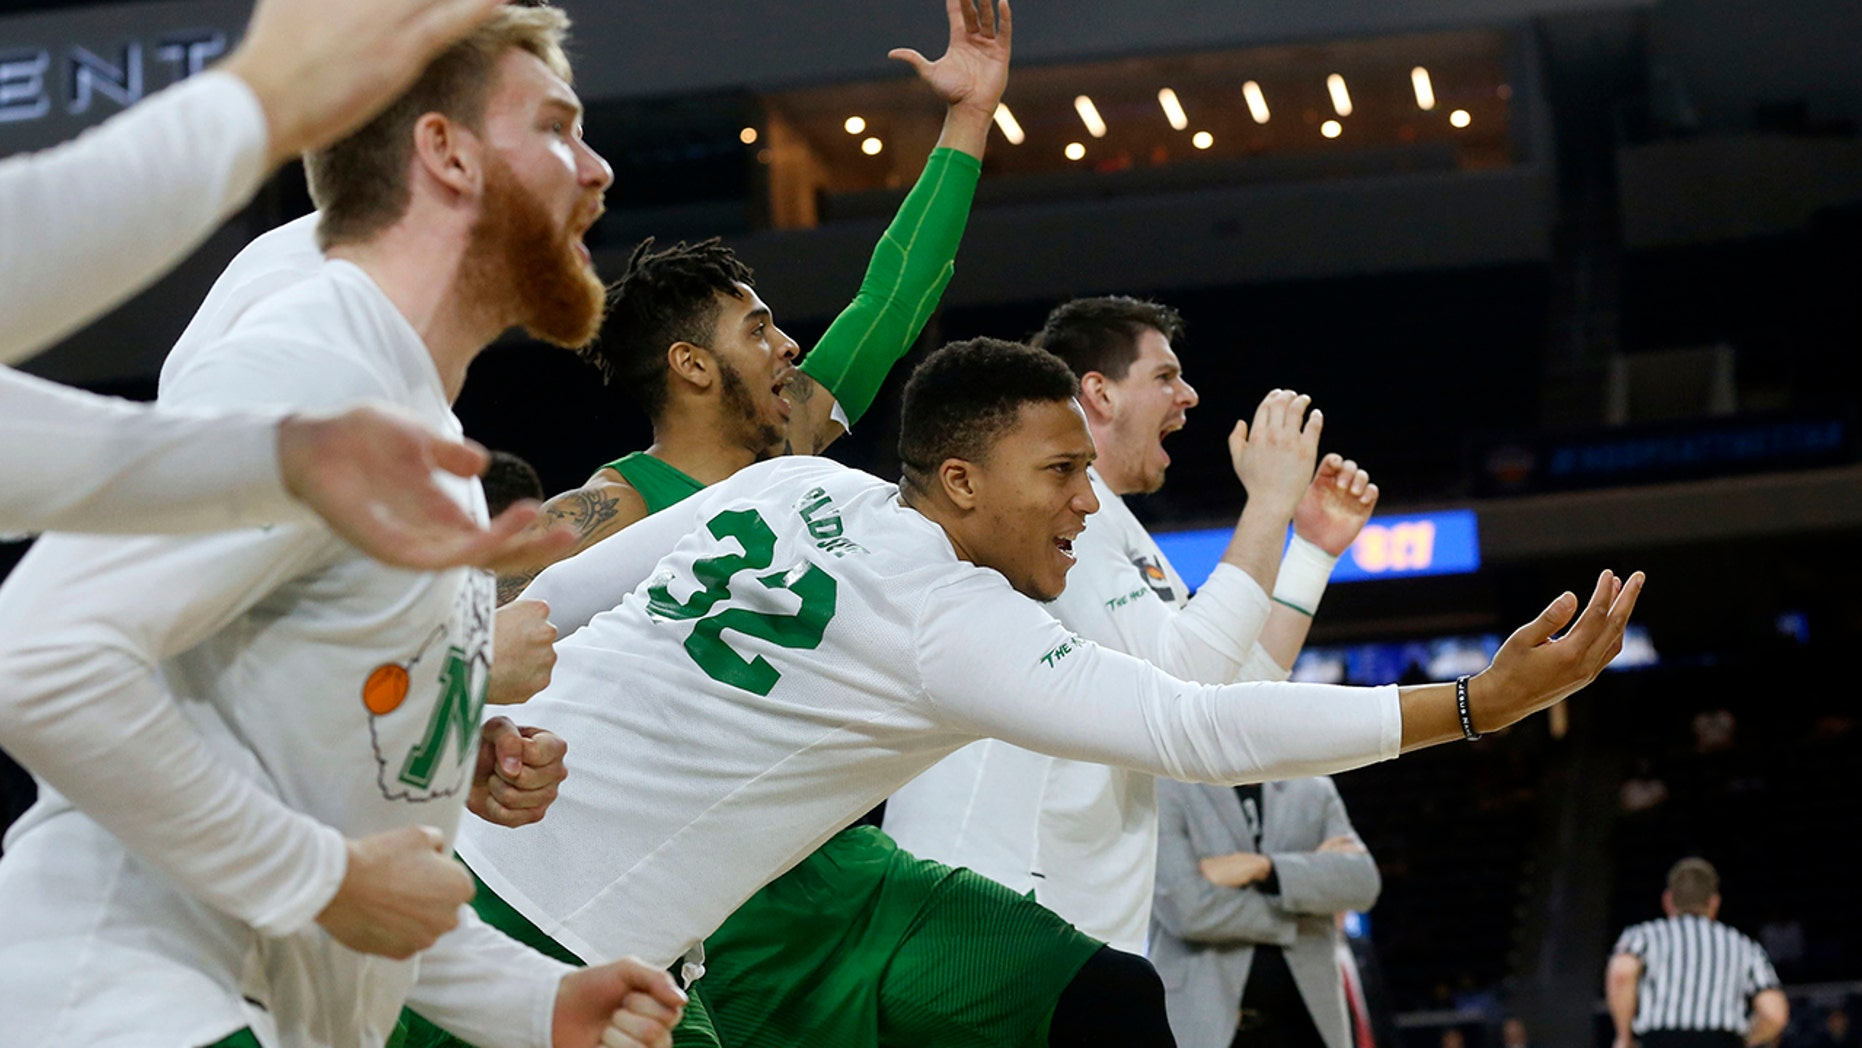 FILE - In this Saturday, March 10, 2018, file photo, then-Marshall guard Phil Bledsoe (32) and the Marshall bench react to a 3-point shot against Western Kentucky during the second half of the NCAA Conference USA basketball championship game in Frisco, Texas. (AP Photo/Michael Ainsworth, File)